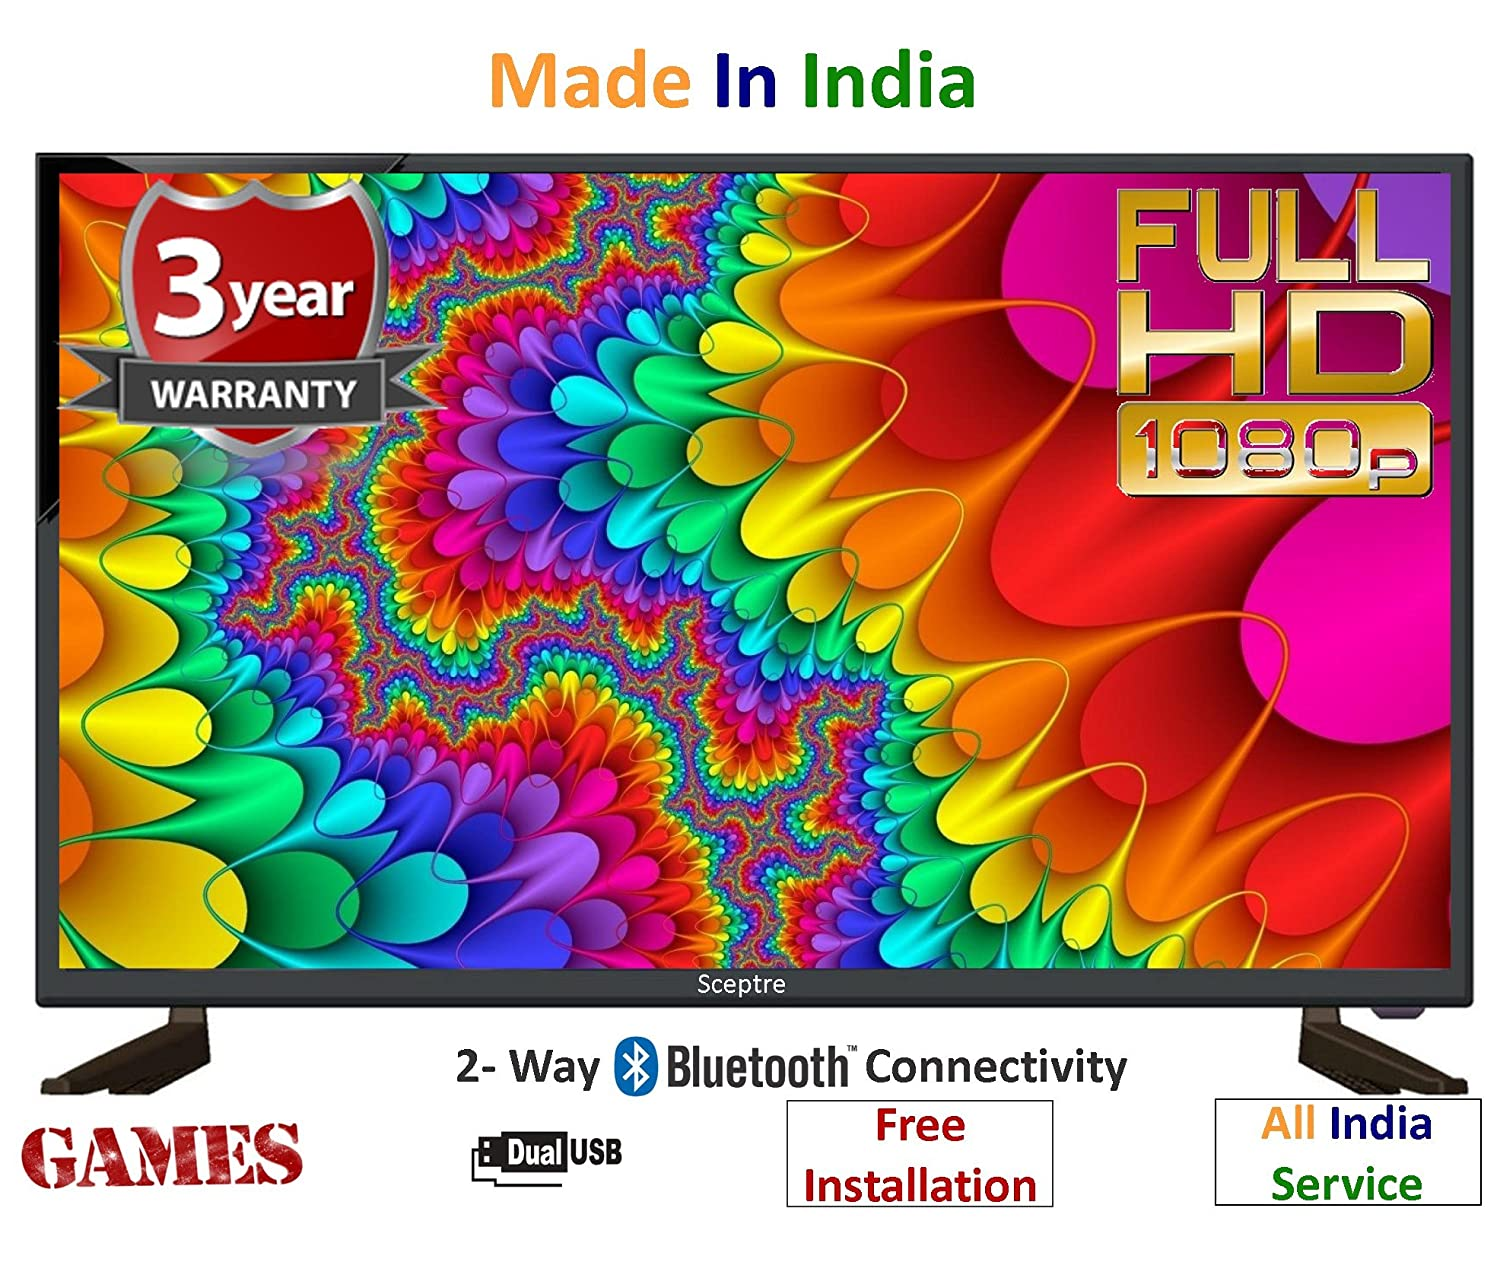 Sceptre 80 cm (32 Inches) Full HD, Bluetooth, Dual USB, Inbuilt Games, Wireless Bluetooth Speaker Connectivity ZX32FFFHD LED TV